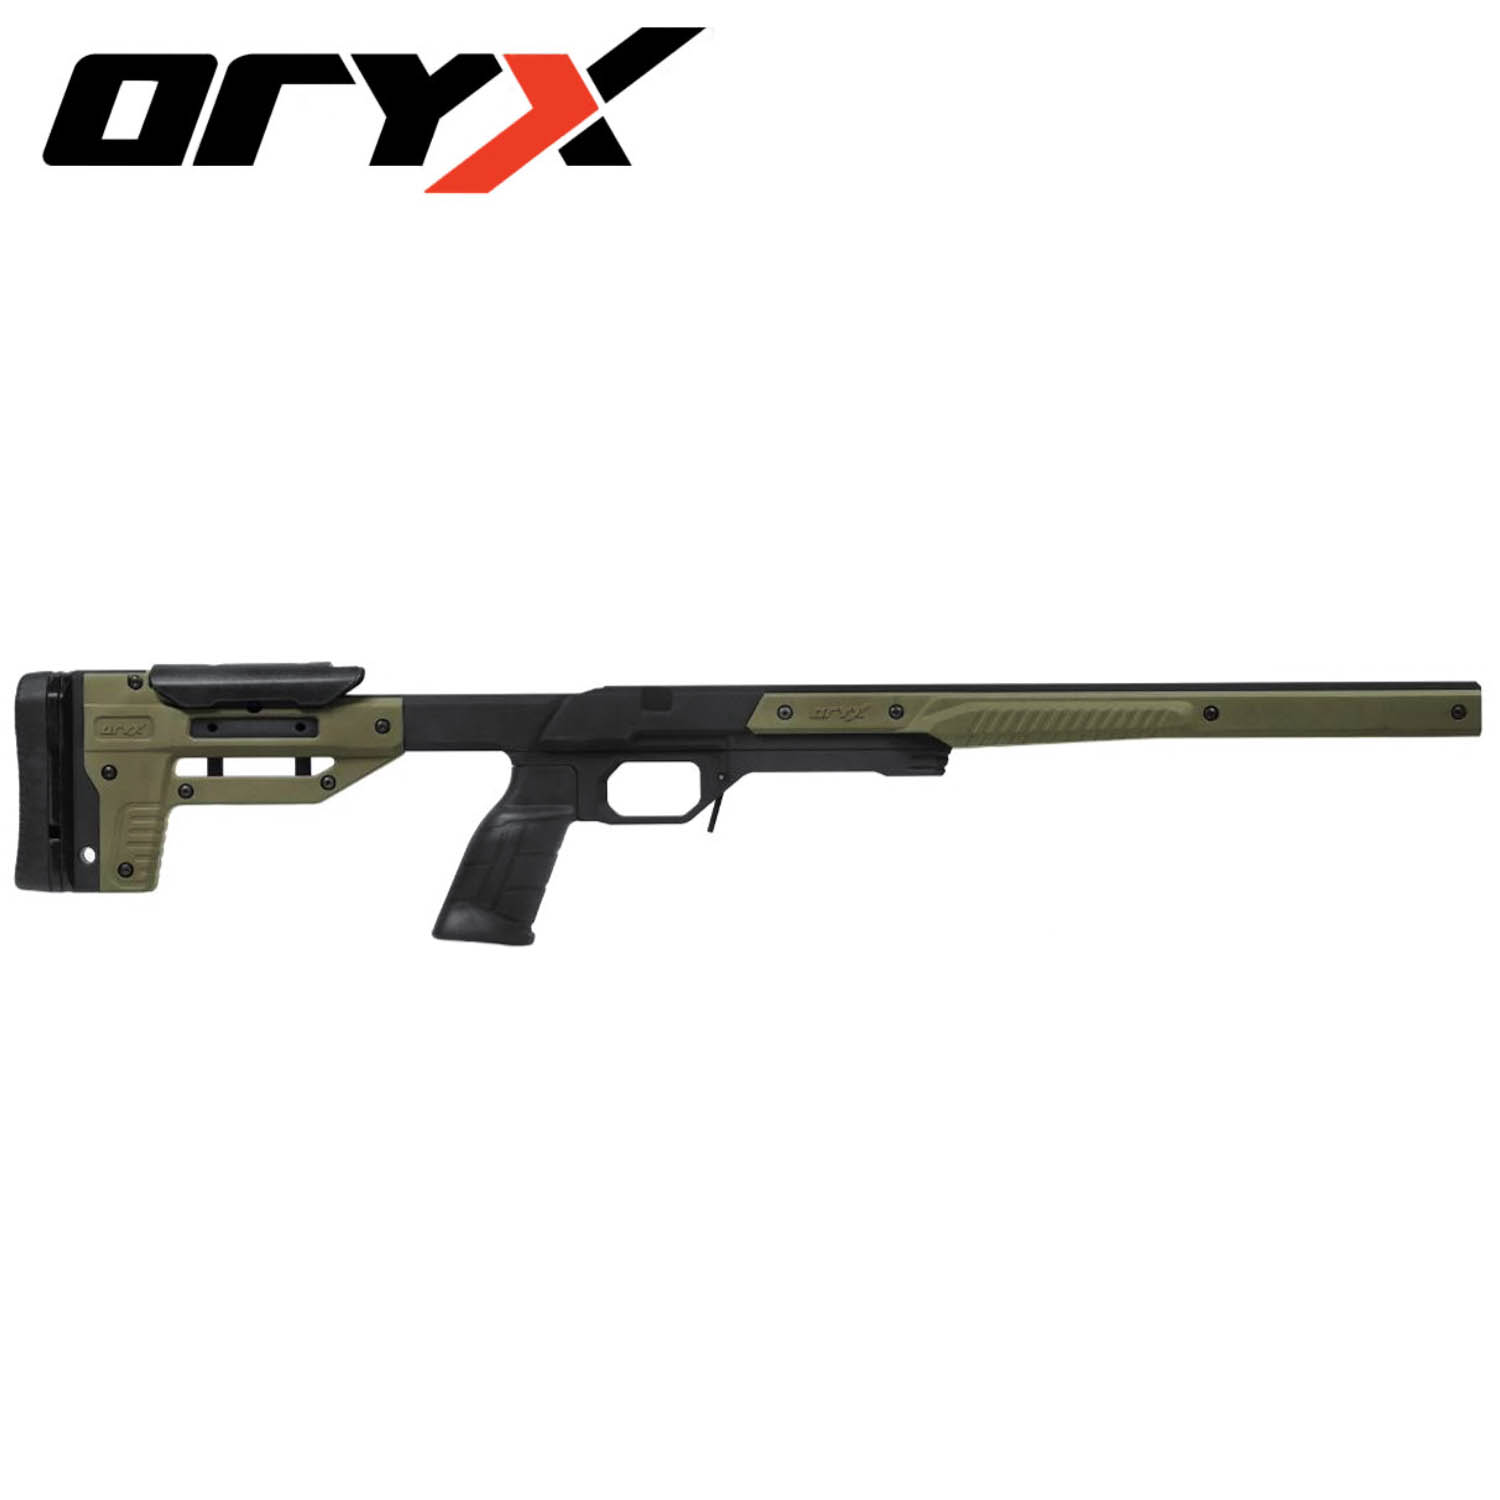 Oryx Rifle Chassis, Howa Short Action, Black / OD Green: Midwest Gun Works